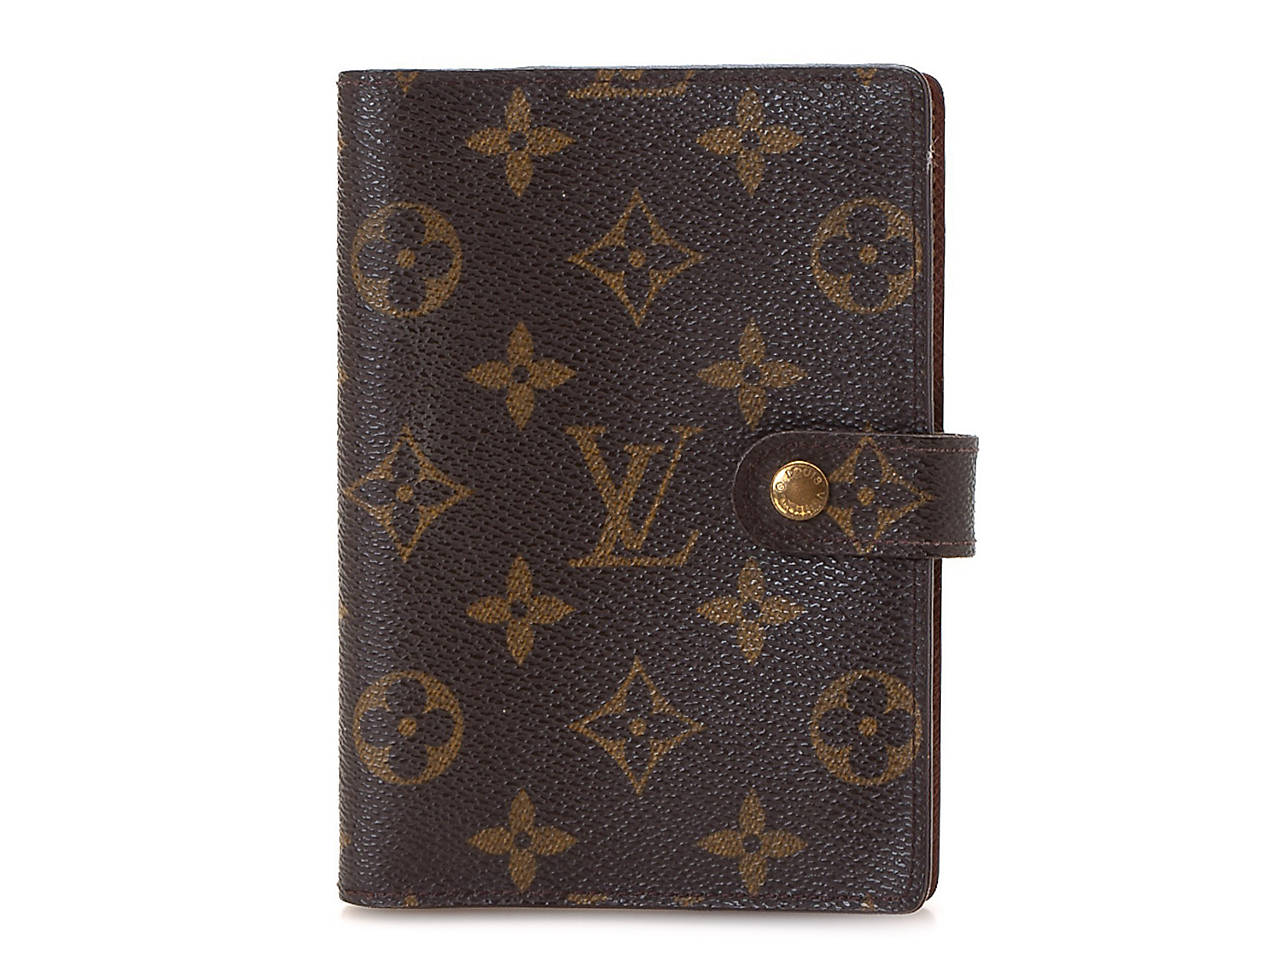 8d0c4c699b98 Louis Vuitton - Vintage Luxury Small Ring Agenda Cover Women s ...